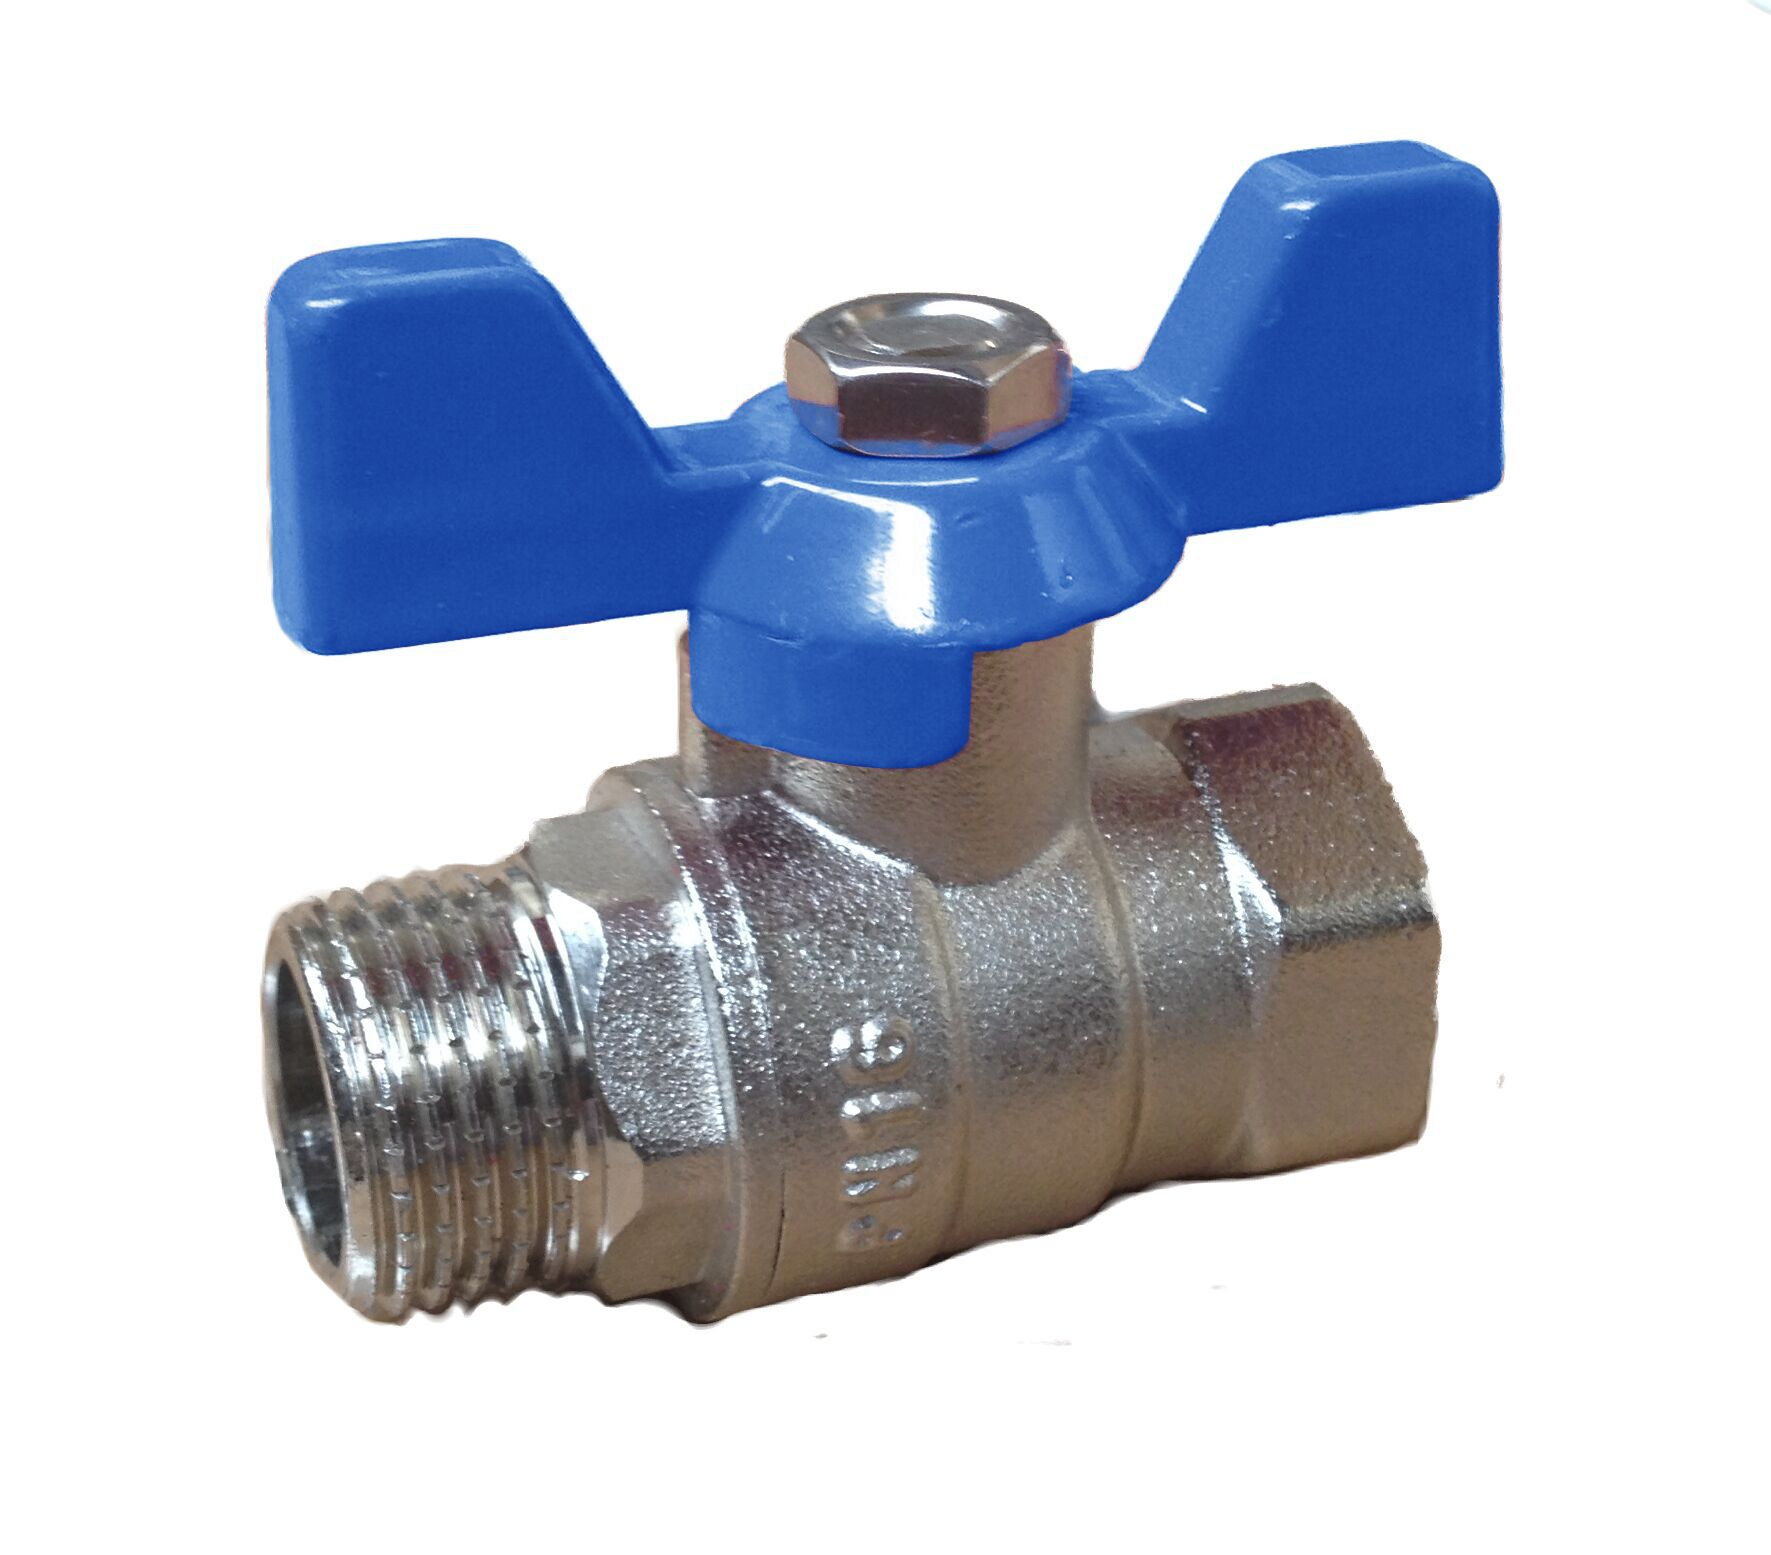 Ball Valve w/ Butterfly 4/4 MxF Blue